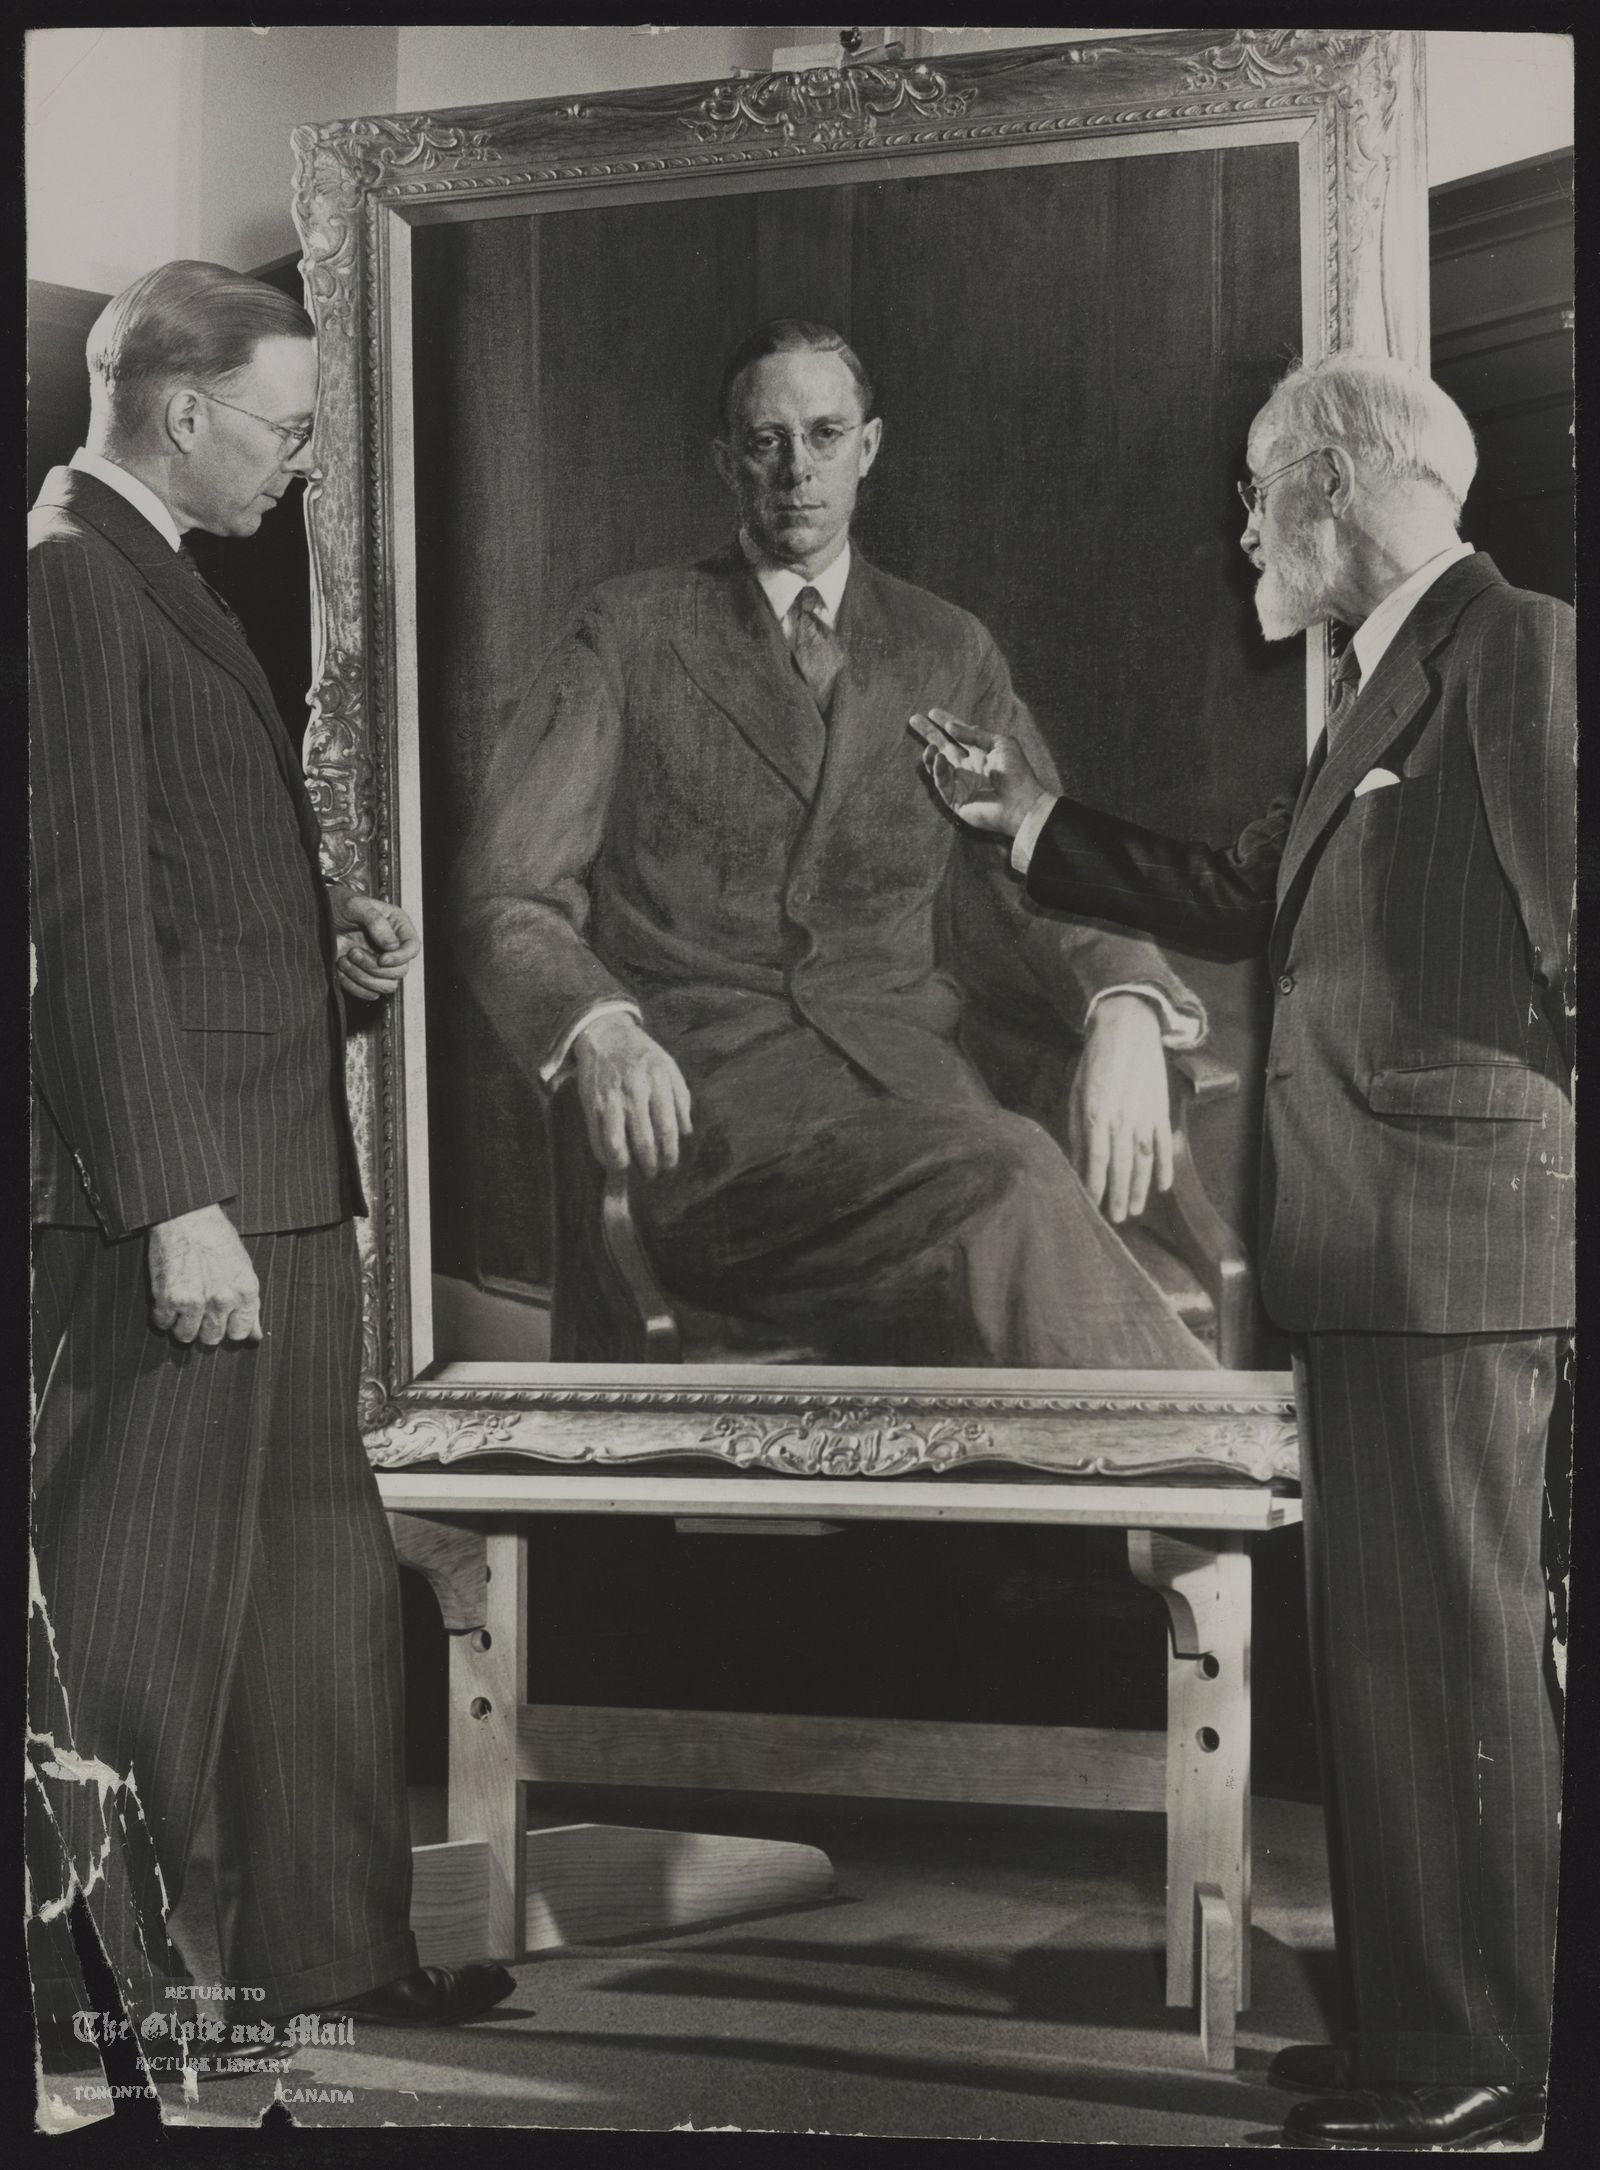 E.C. MANNING Alberta PORTRAIT DONE---Premier E.C. Manning of Alberta, left, and Ernest Fosbery, R.C.A., of Montreal, study the premier's portrait recently completed by Mr. Fosbery. The painting was commissioned privately by member of the Alberta cabinet.